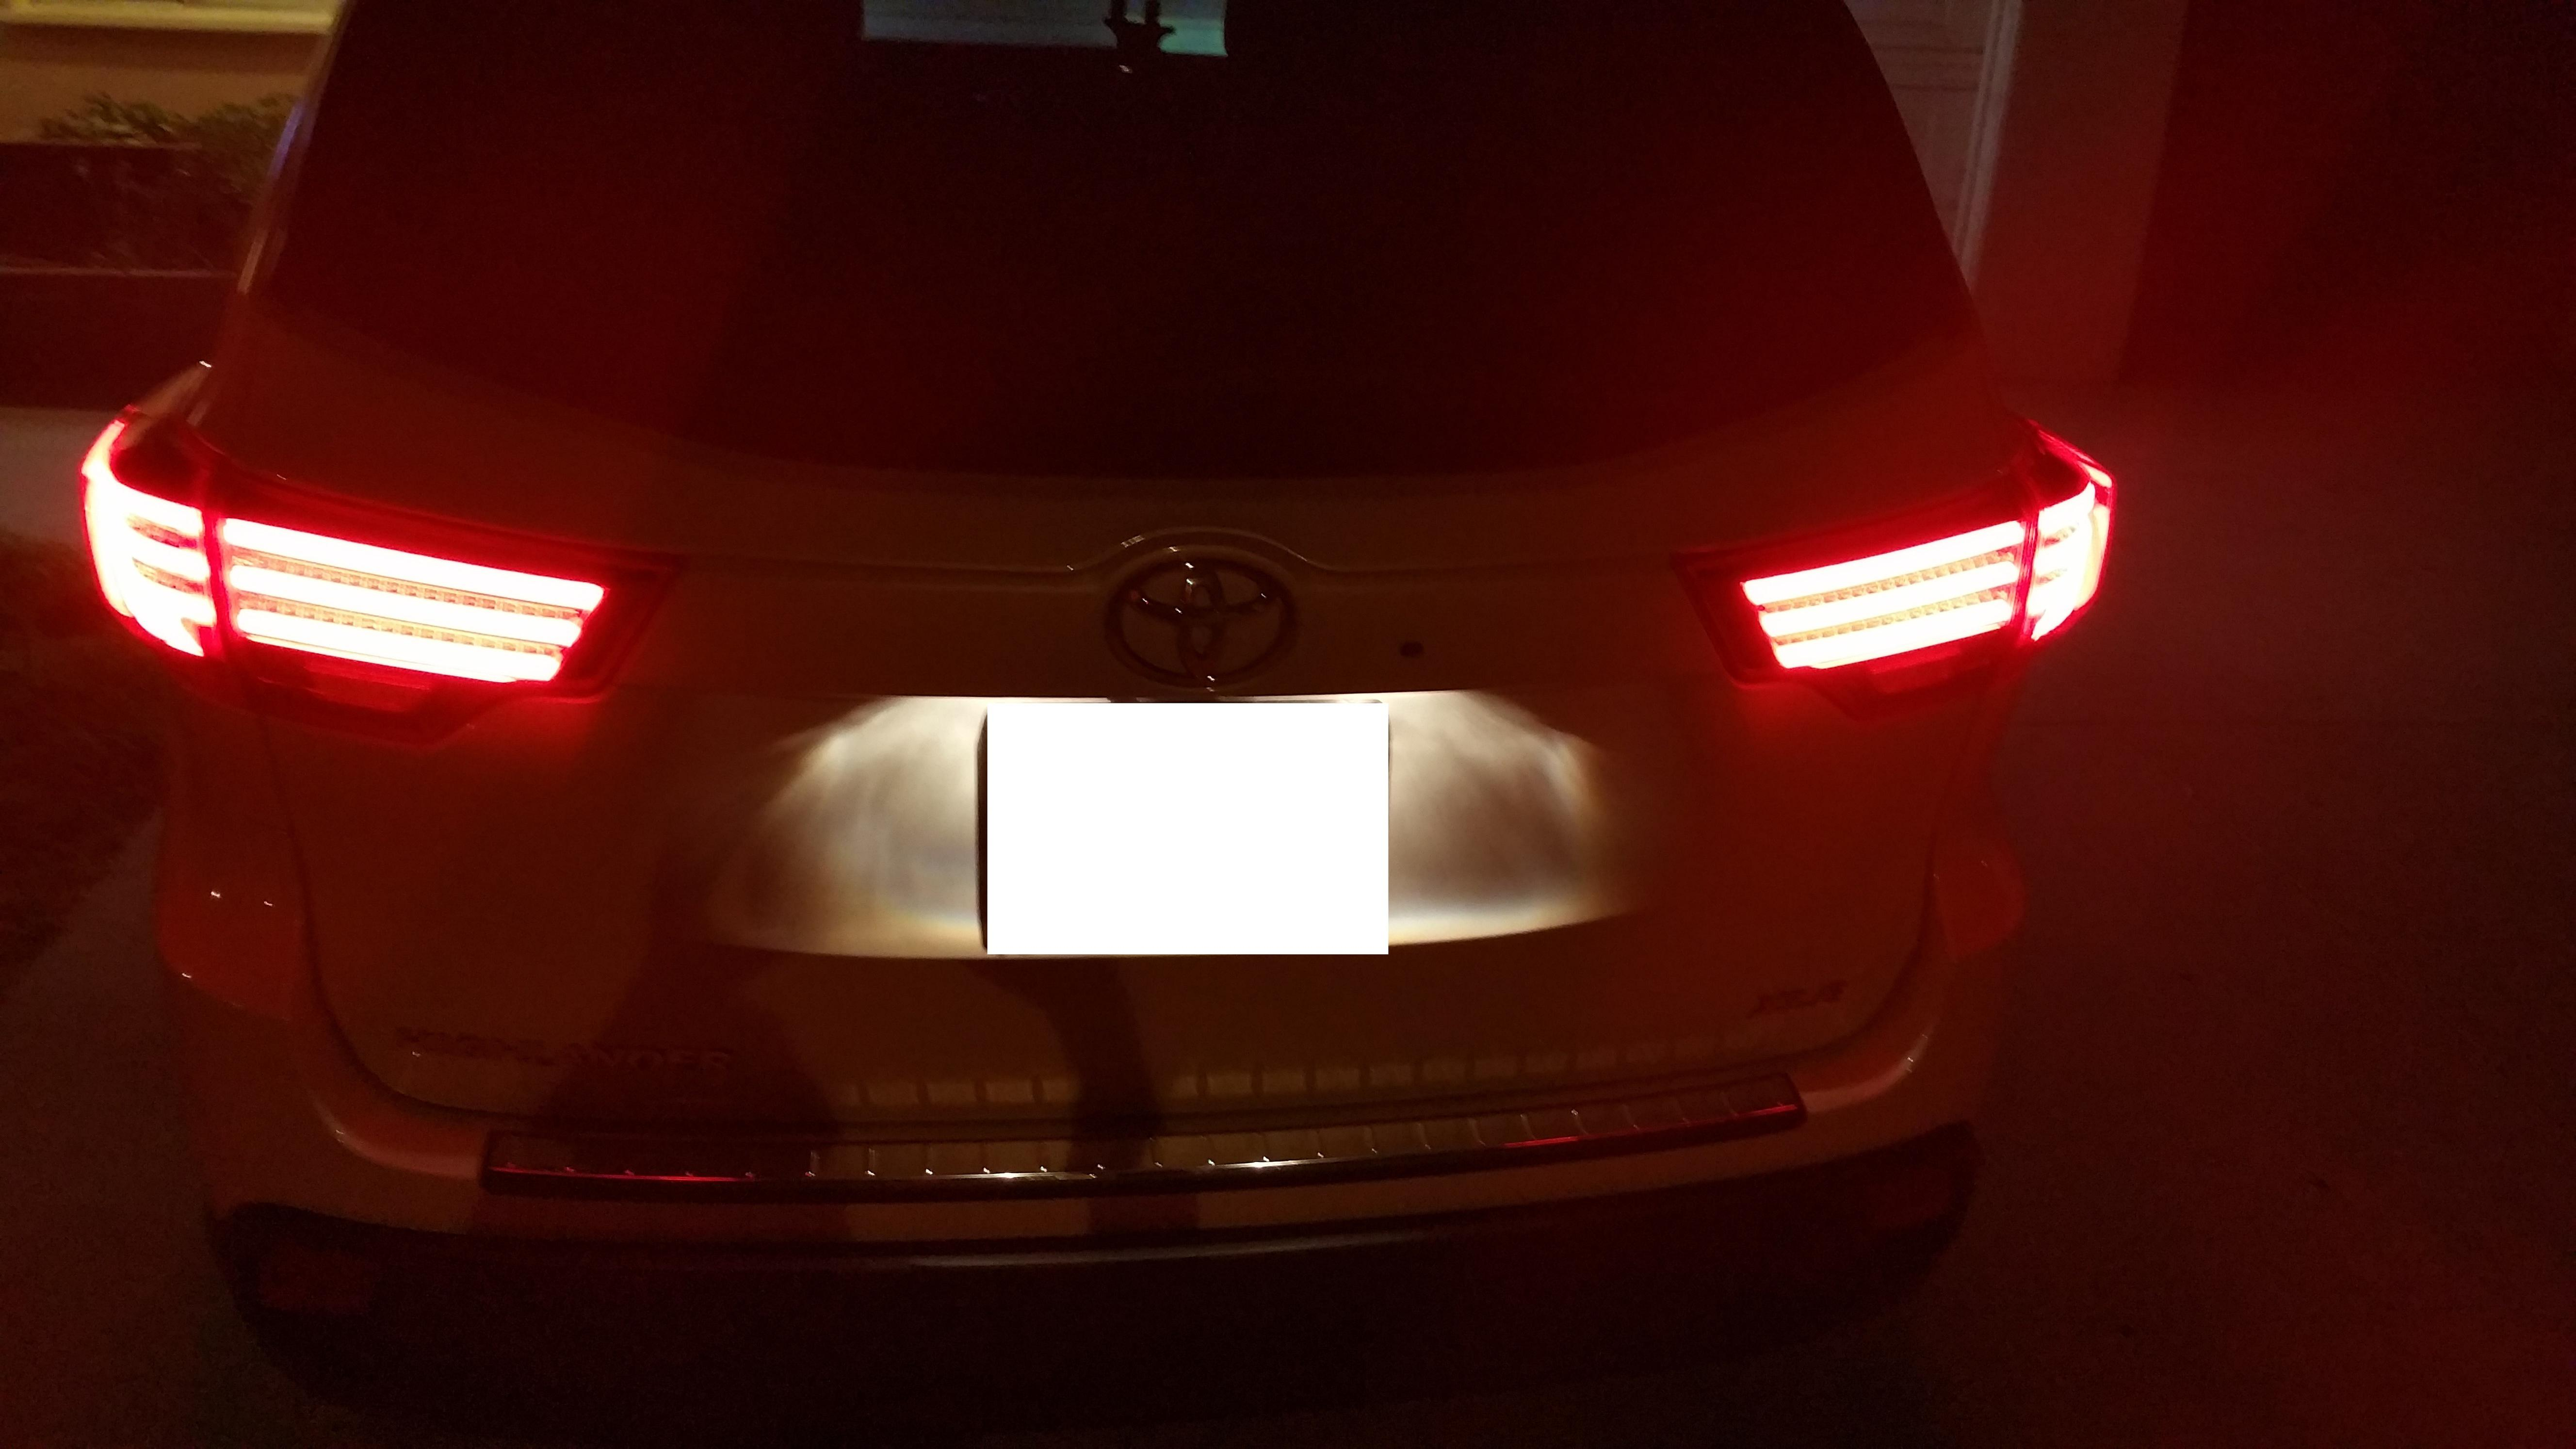 Ebay Led Tail Lights Installed 2015 White Xle Toyota Nation 2010 Light Swapledwiringjpg Click Image For Larger Version Name 08 18 203234